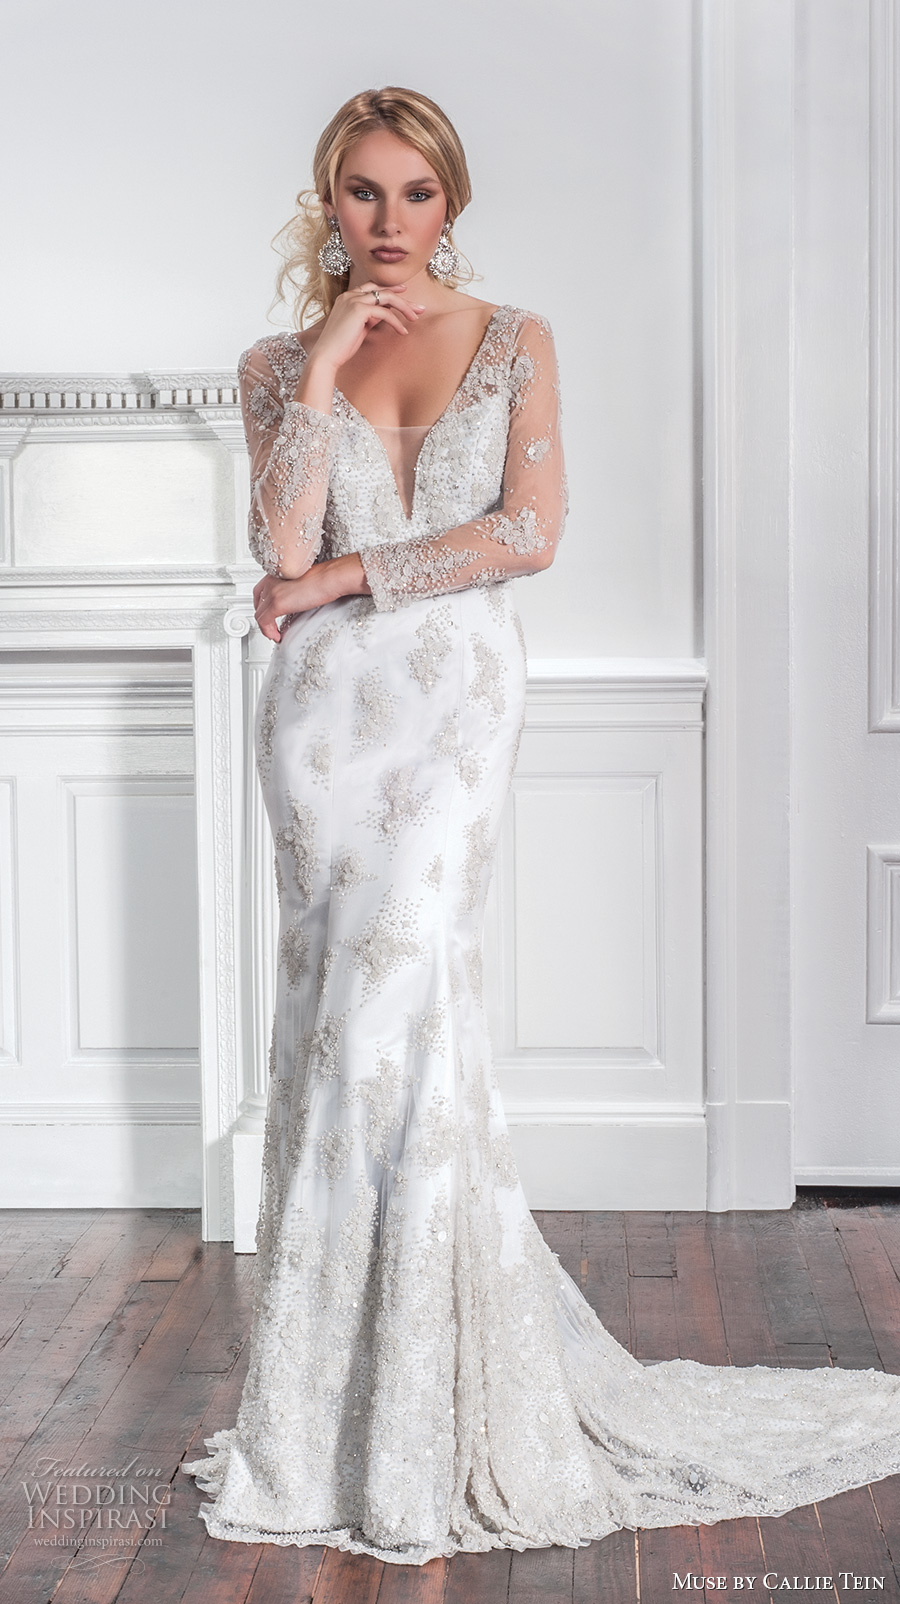 muse by callie tein fall 2017 bridal long sleeves deep plunging v neck full embellishment glitter beaded elegant sexy sheath fit flare wedding dress low back chapel train (luna) mv